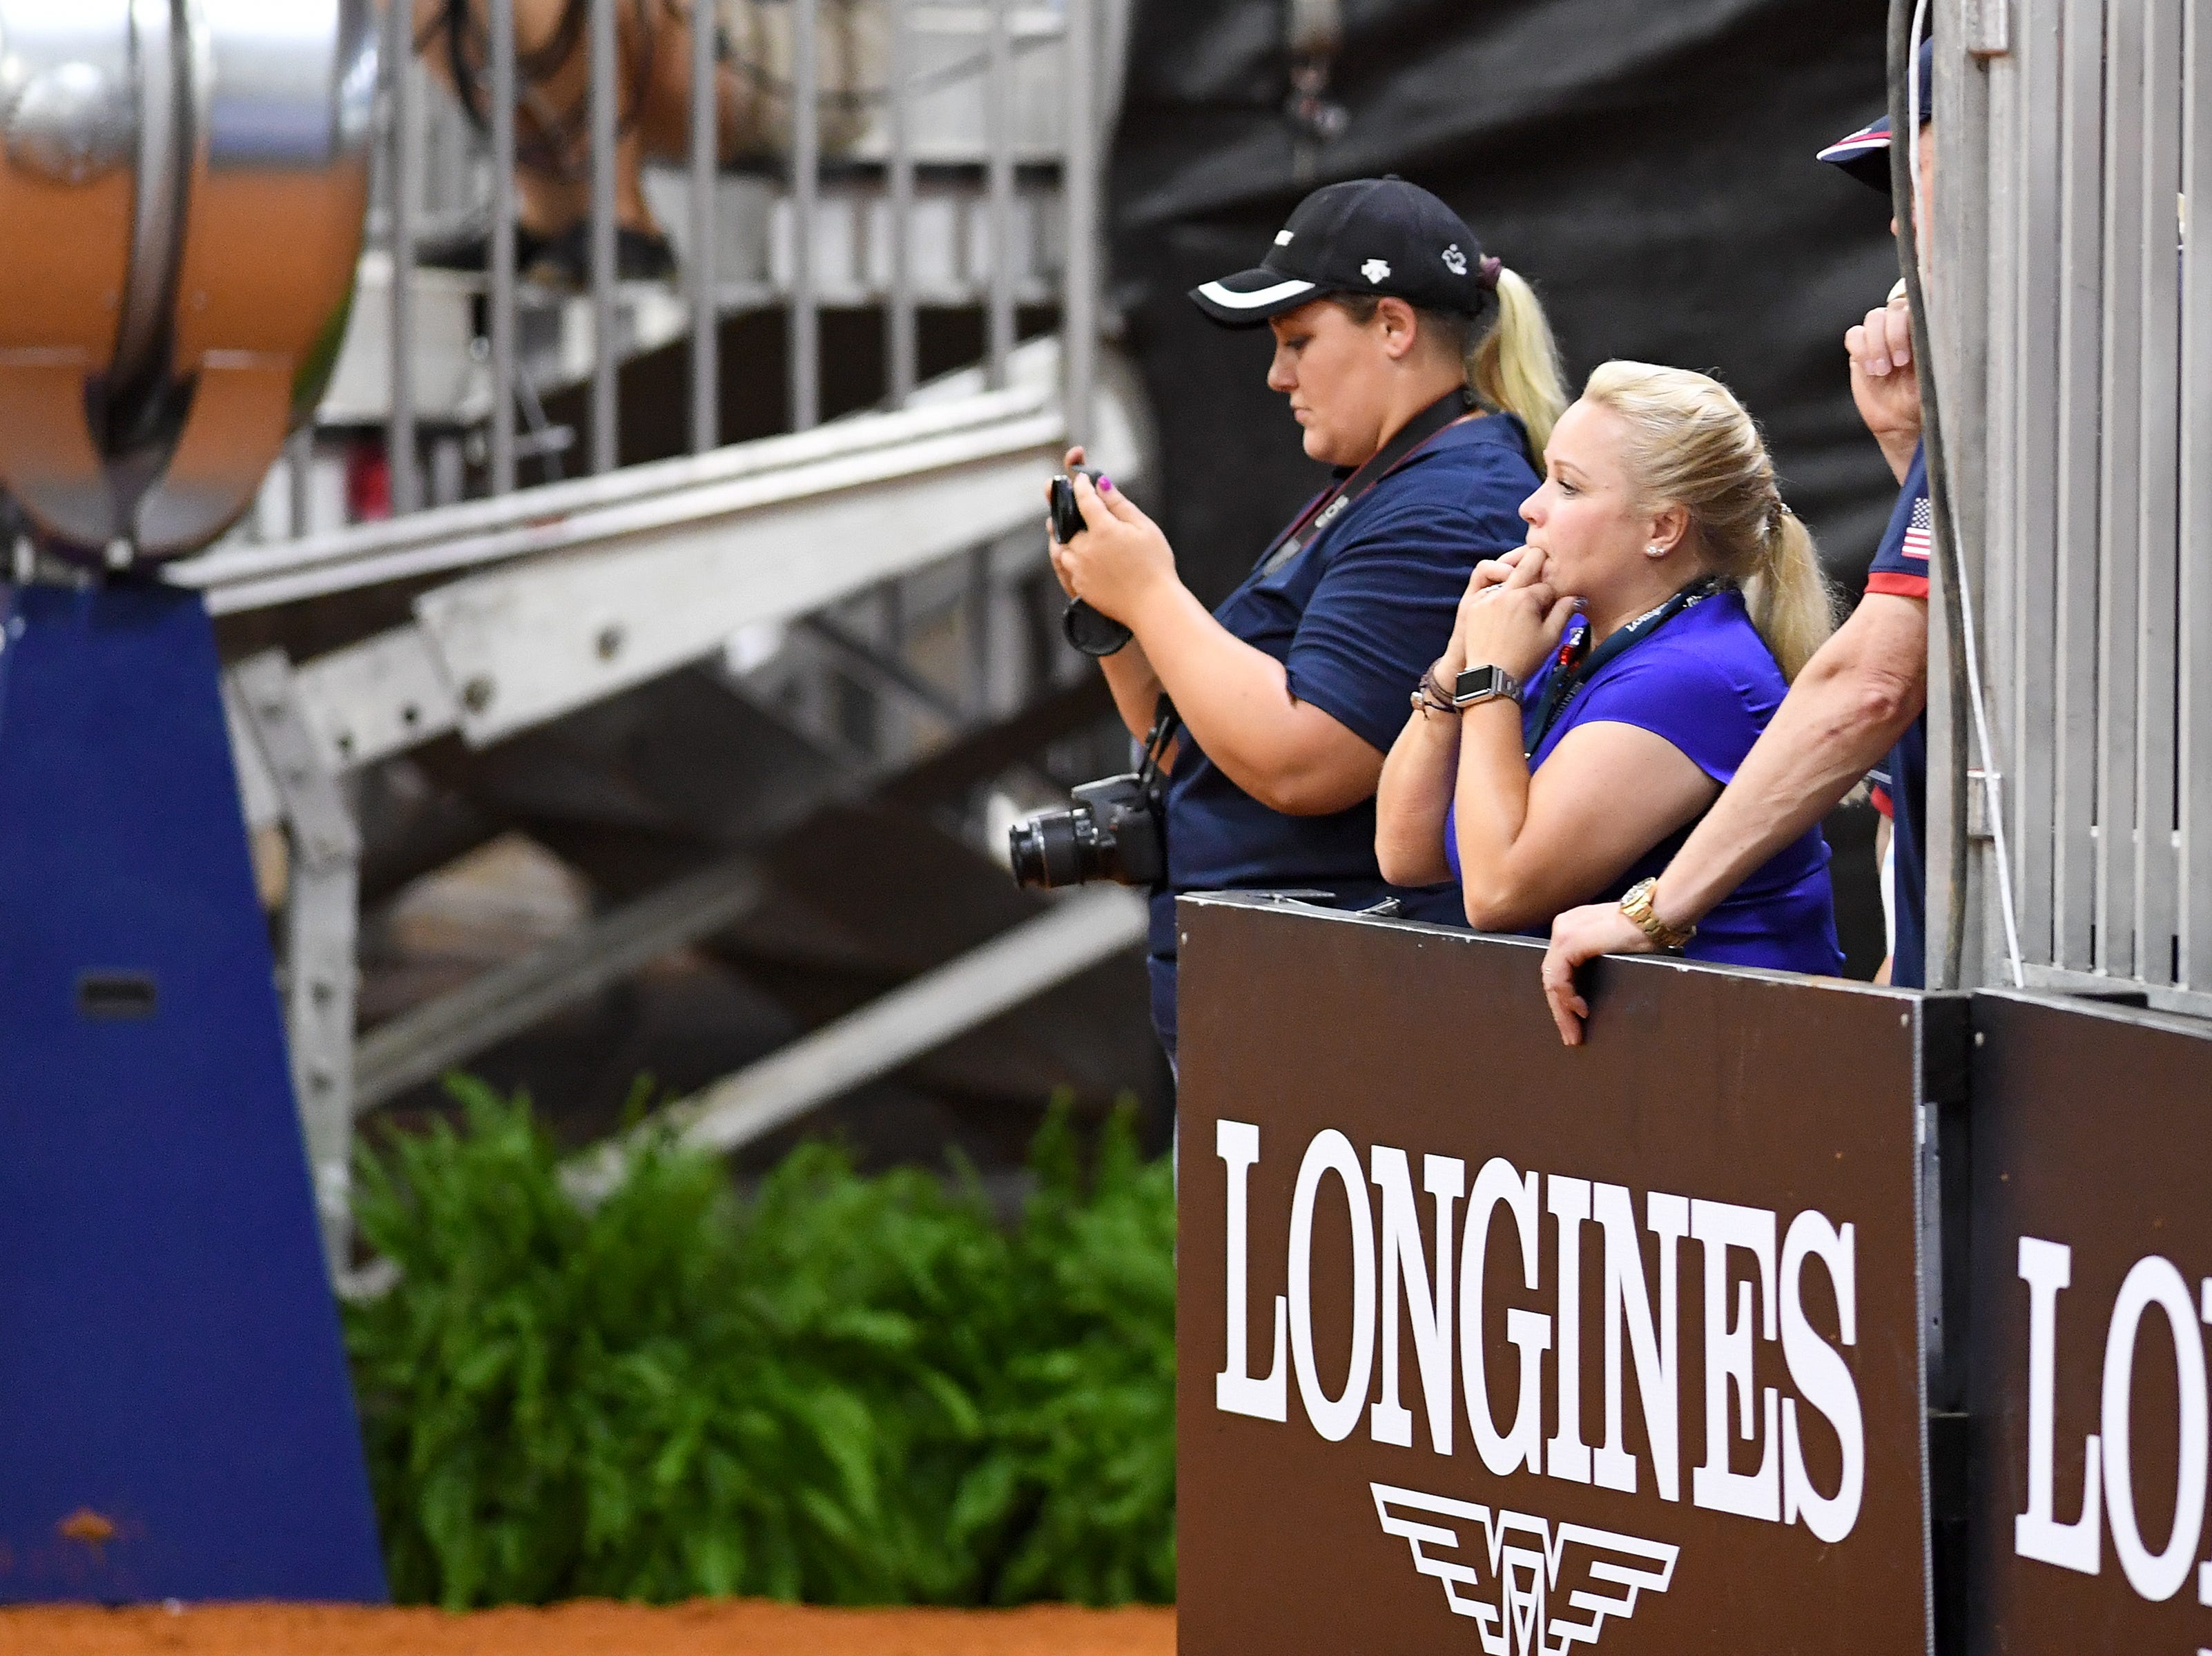 Cade Mccutcheon's mother, Mandy, cheers during the reining competition of the FEI World Equestrian Games at the Tryon International Equestrian Center on Sept. 12, 2018. Mccutcheon is the youngest U.S. competitor in the games and his performance put him in the lead for the first bout of competition.